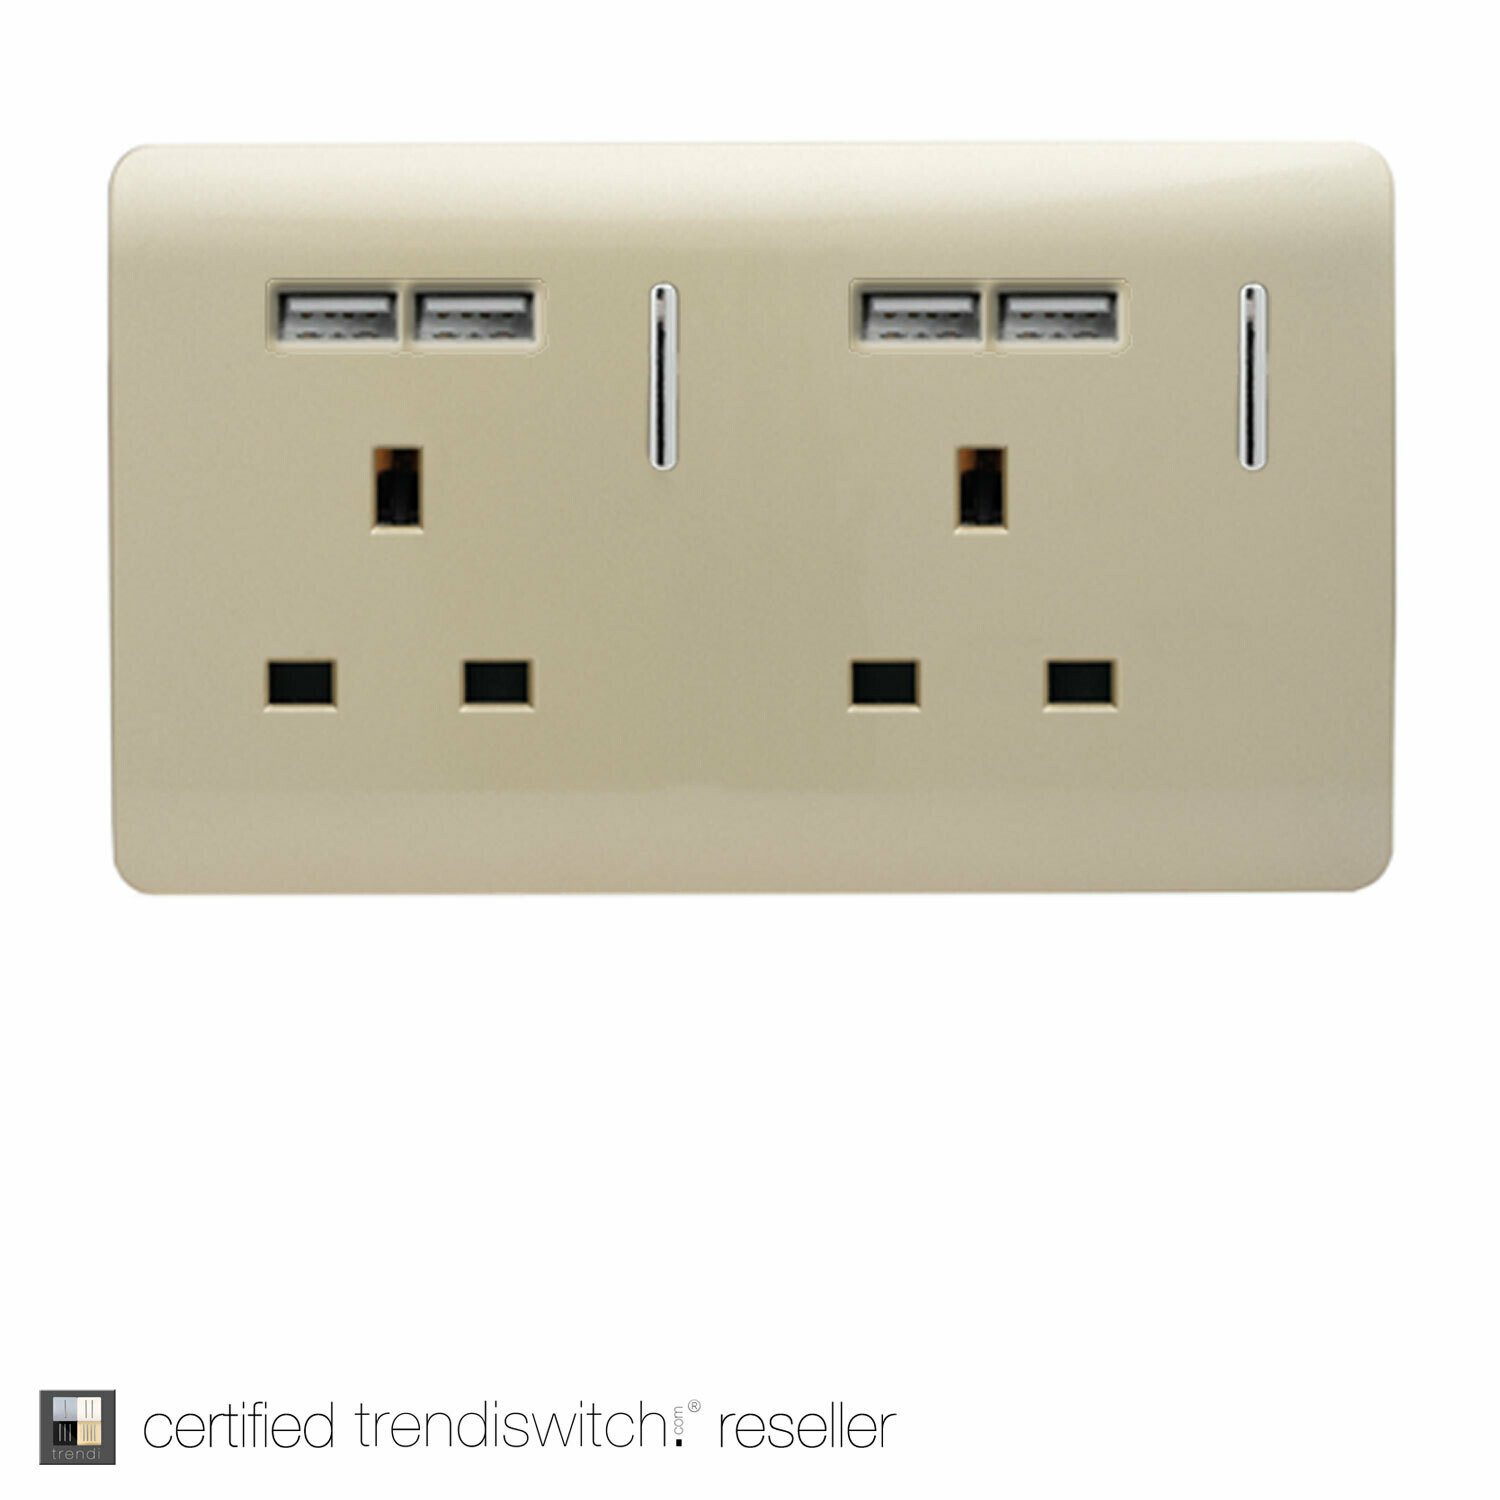 Trendi, Artistic Modern 2 Gang 13Amp Switched Double Socket With 4X 2.1Mah USB Champagne Gold Finish, BRITISH MADE, 5yrs warranty